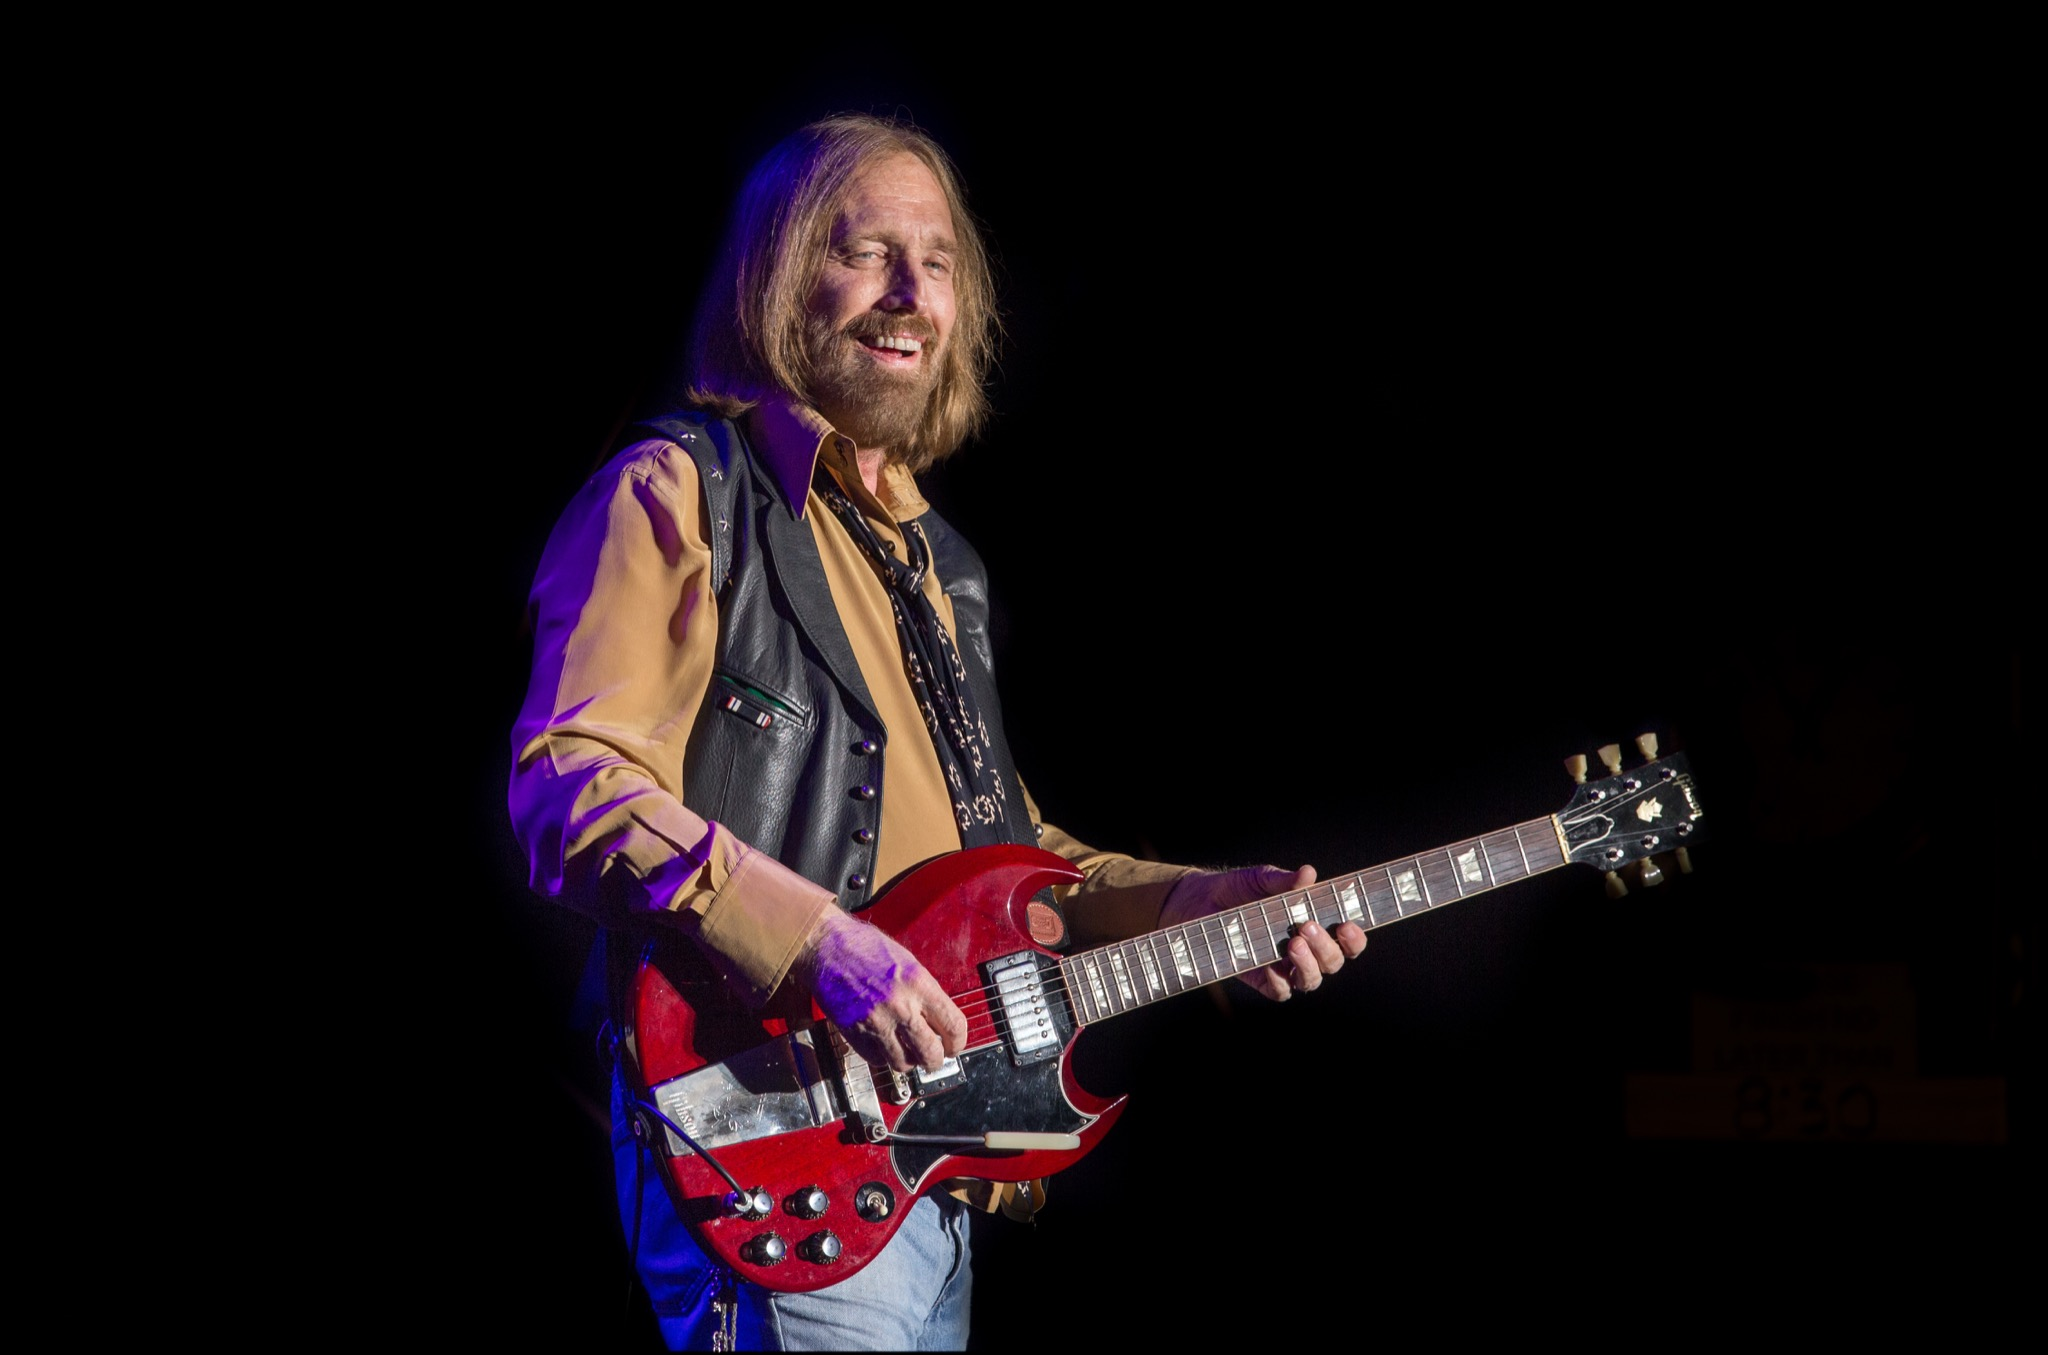 Tom Petty Quotes: Best Quotes & Most-Famous Sayings